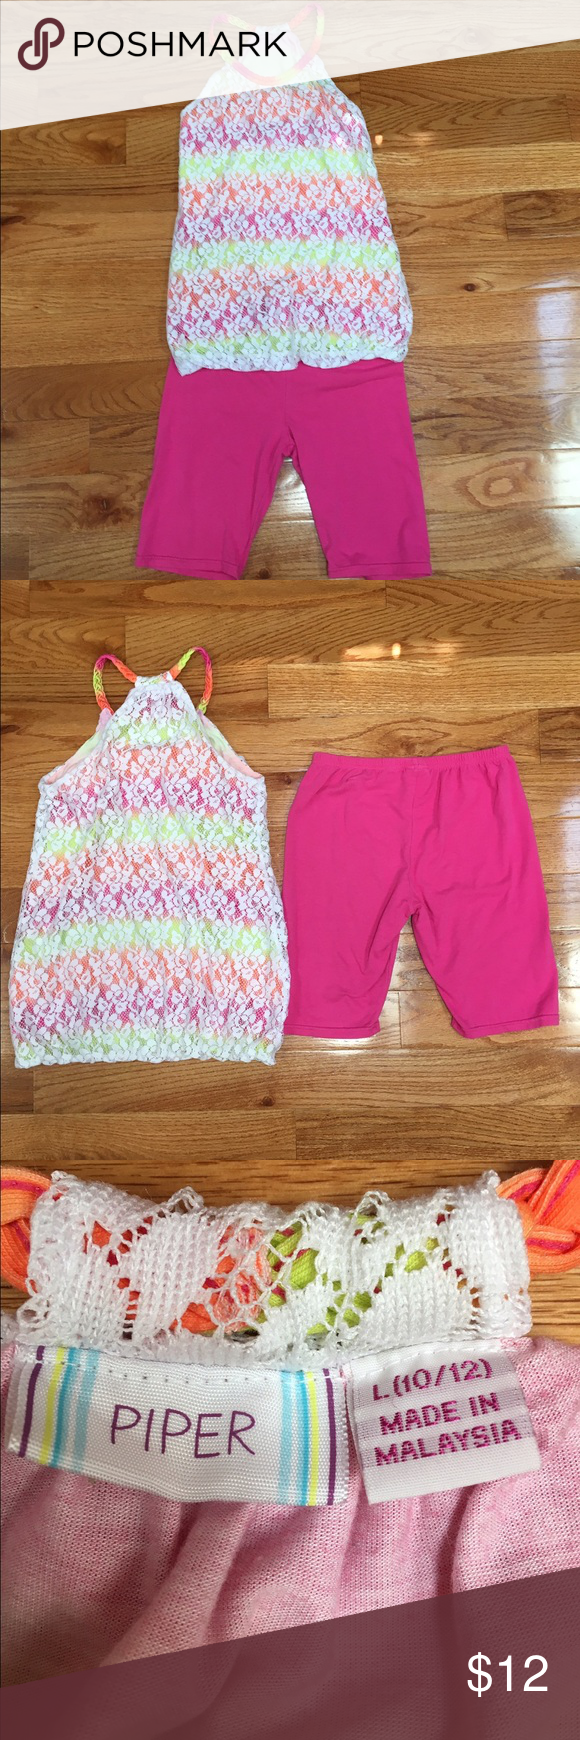 Cute Summer Outfit In this summer outfit there is comfortable pink shorts and a tank top that has a necklace shape. The shirt has pink,green, & orange inside of it and a white lace over it. Awesome outfit ! The size is 10/12. Been worn but gently used. Shirts & Tops Tank Tops